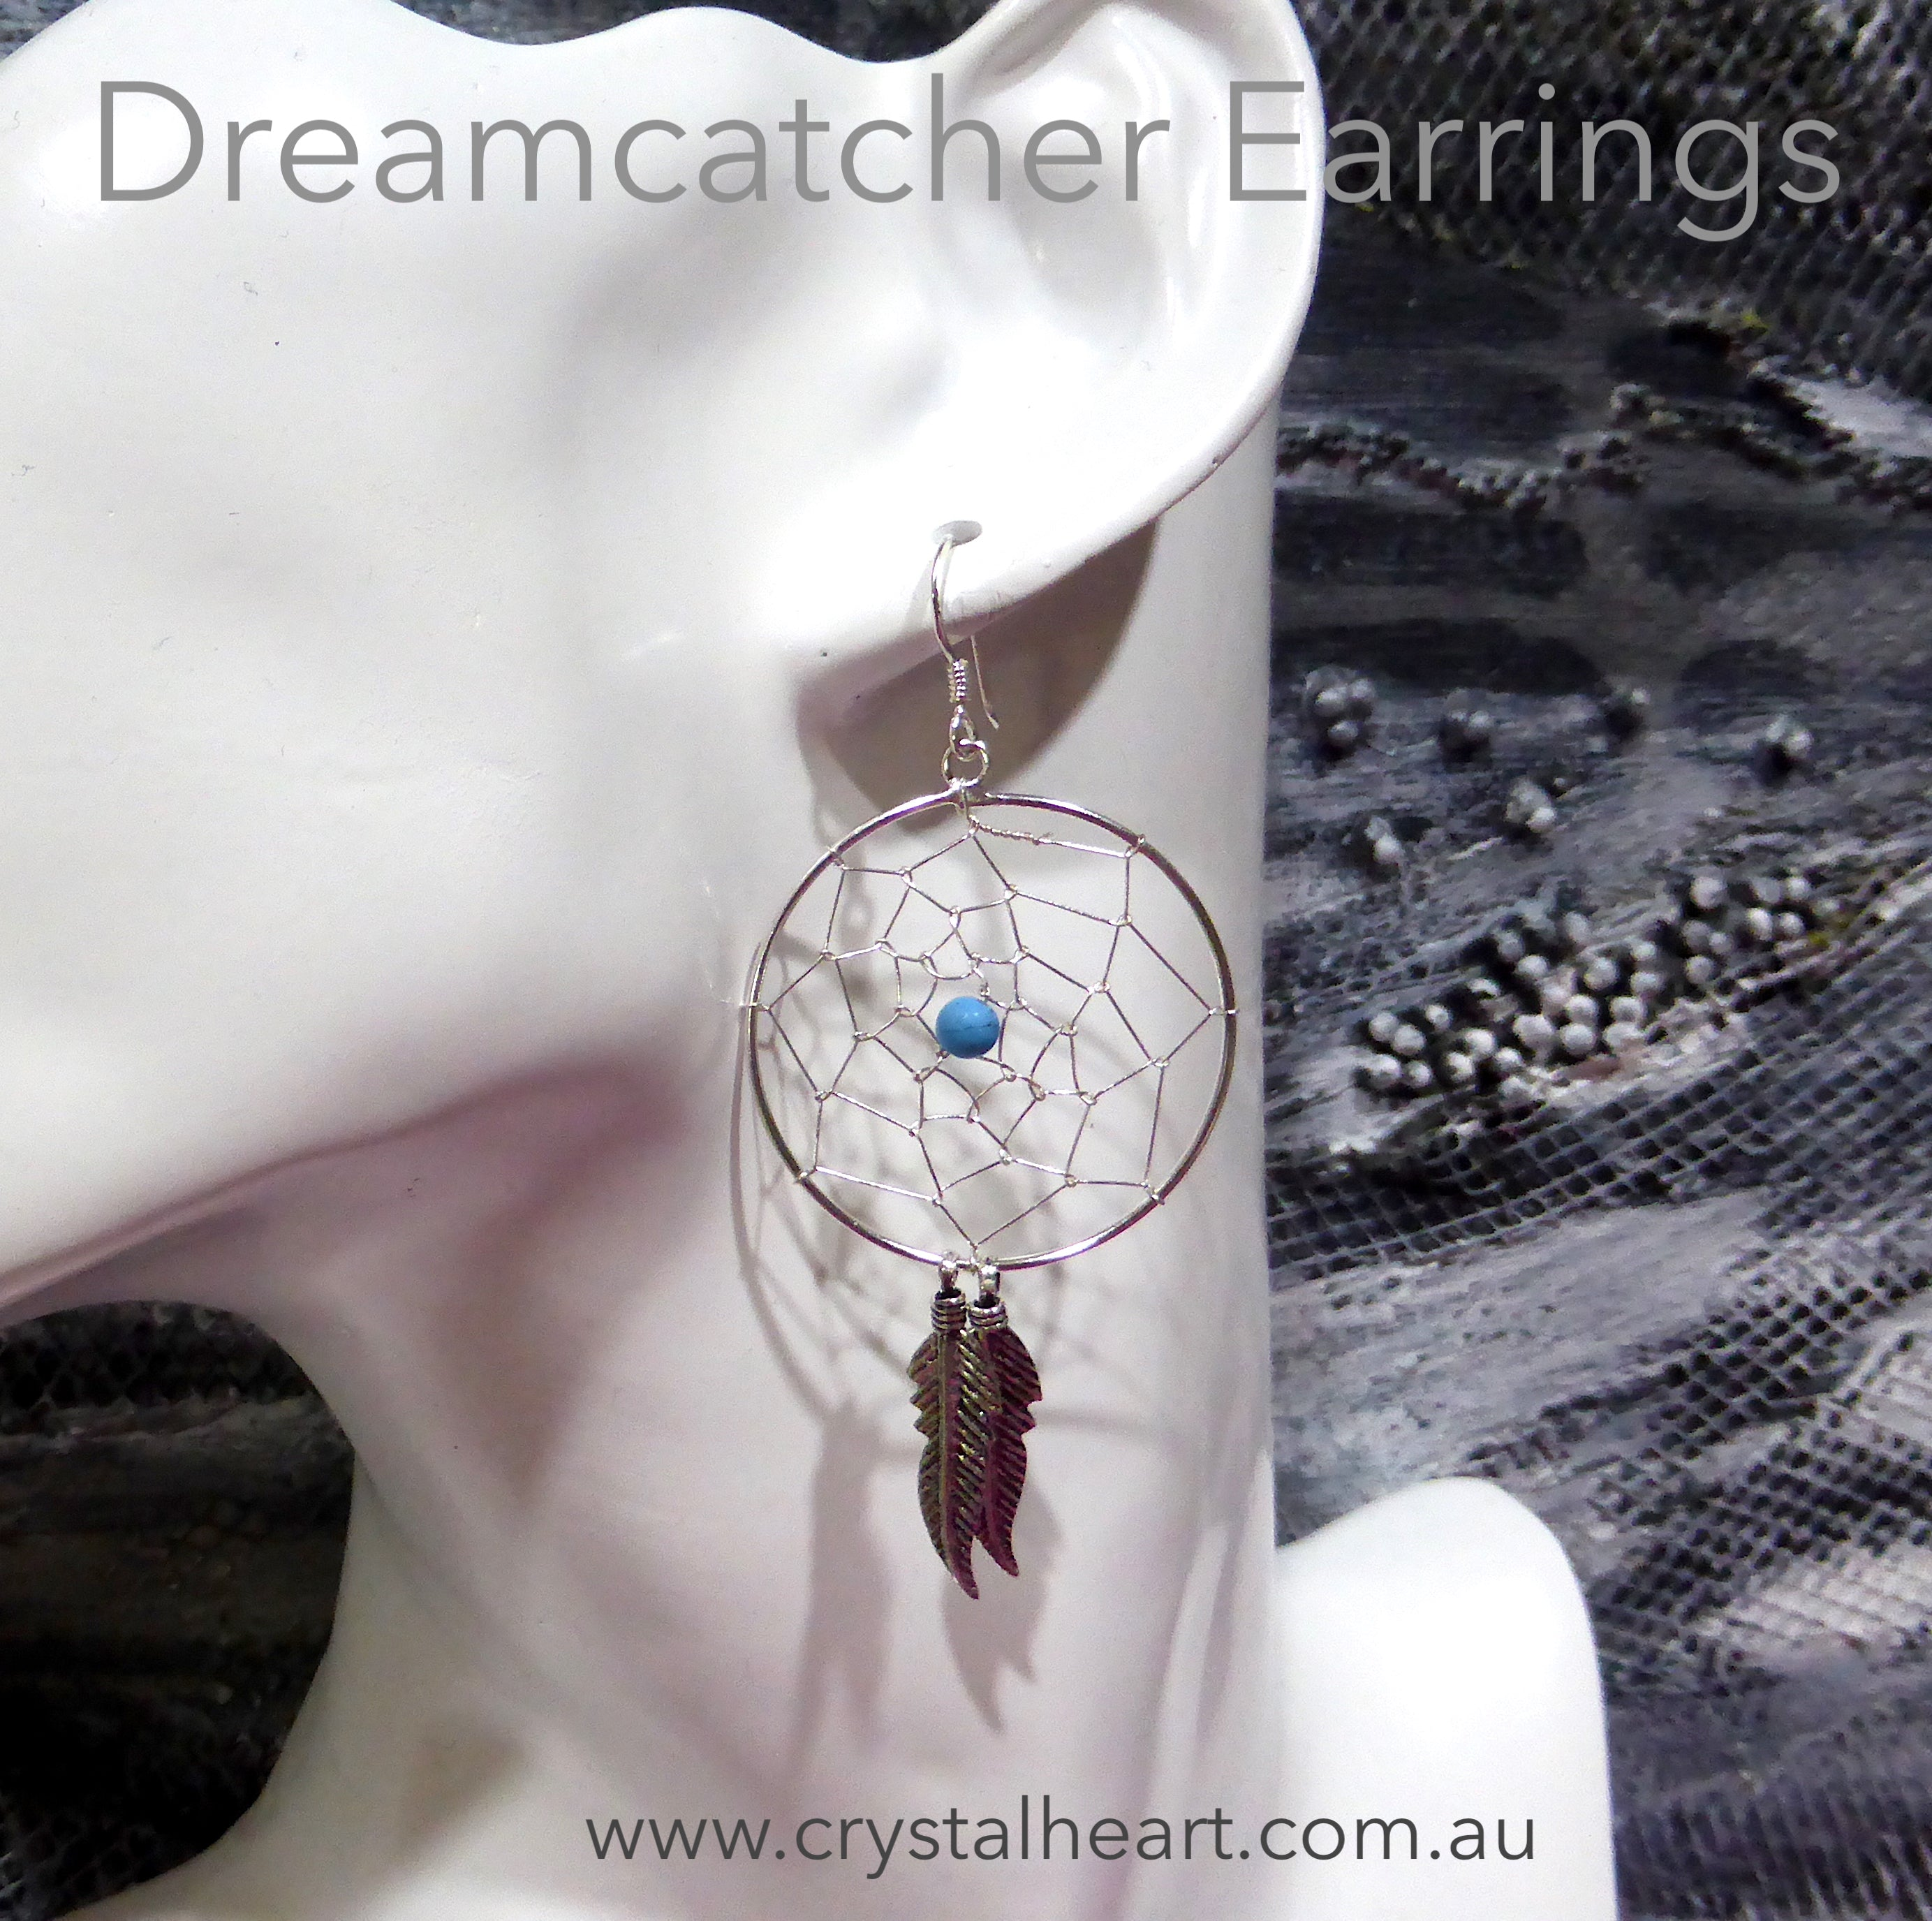 Dreamcatcher Earring | 925 Sterling Silver | Oxidised Silver Feathers | Turquoise Bead | Crystal Heart Melbourne Australia since 1986